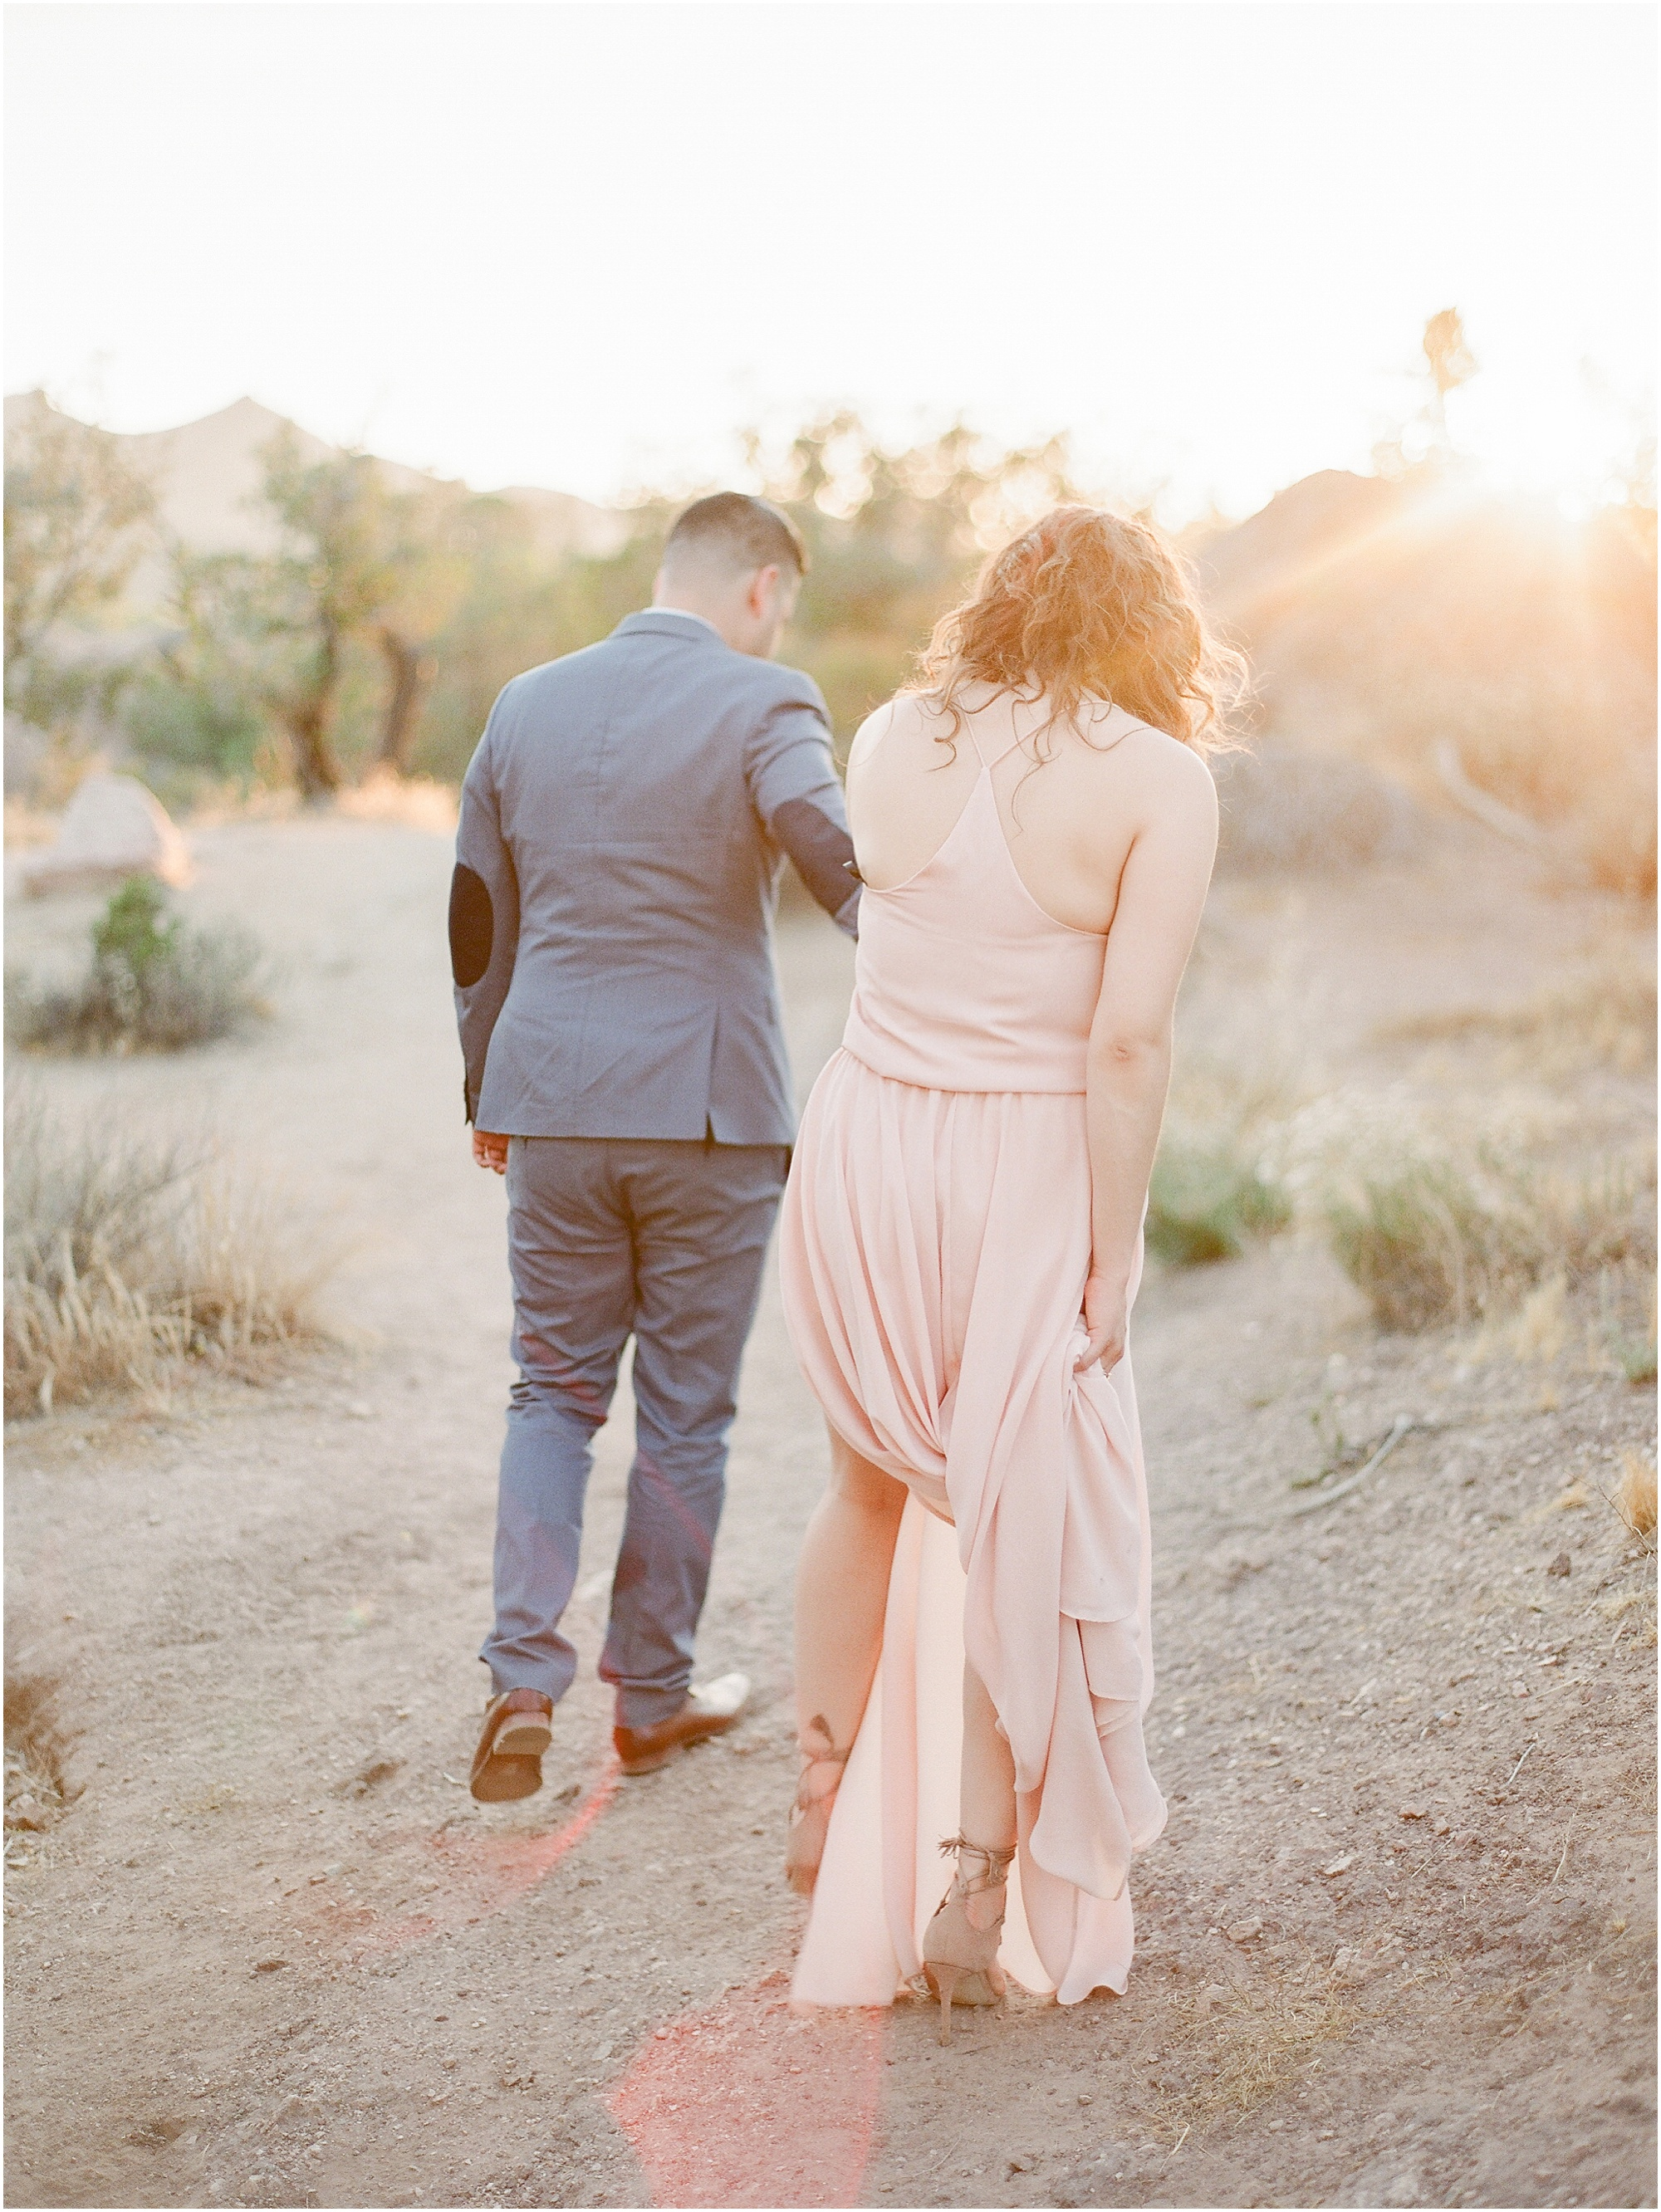 Vasquez-rocks-engagement-session-65.jpg